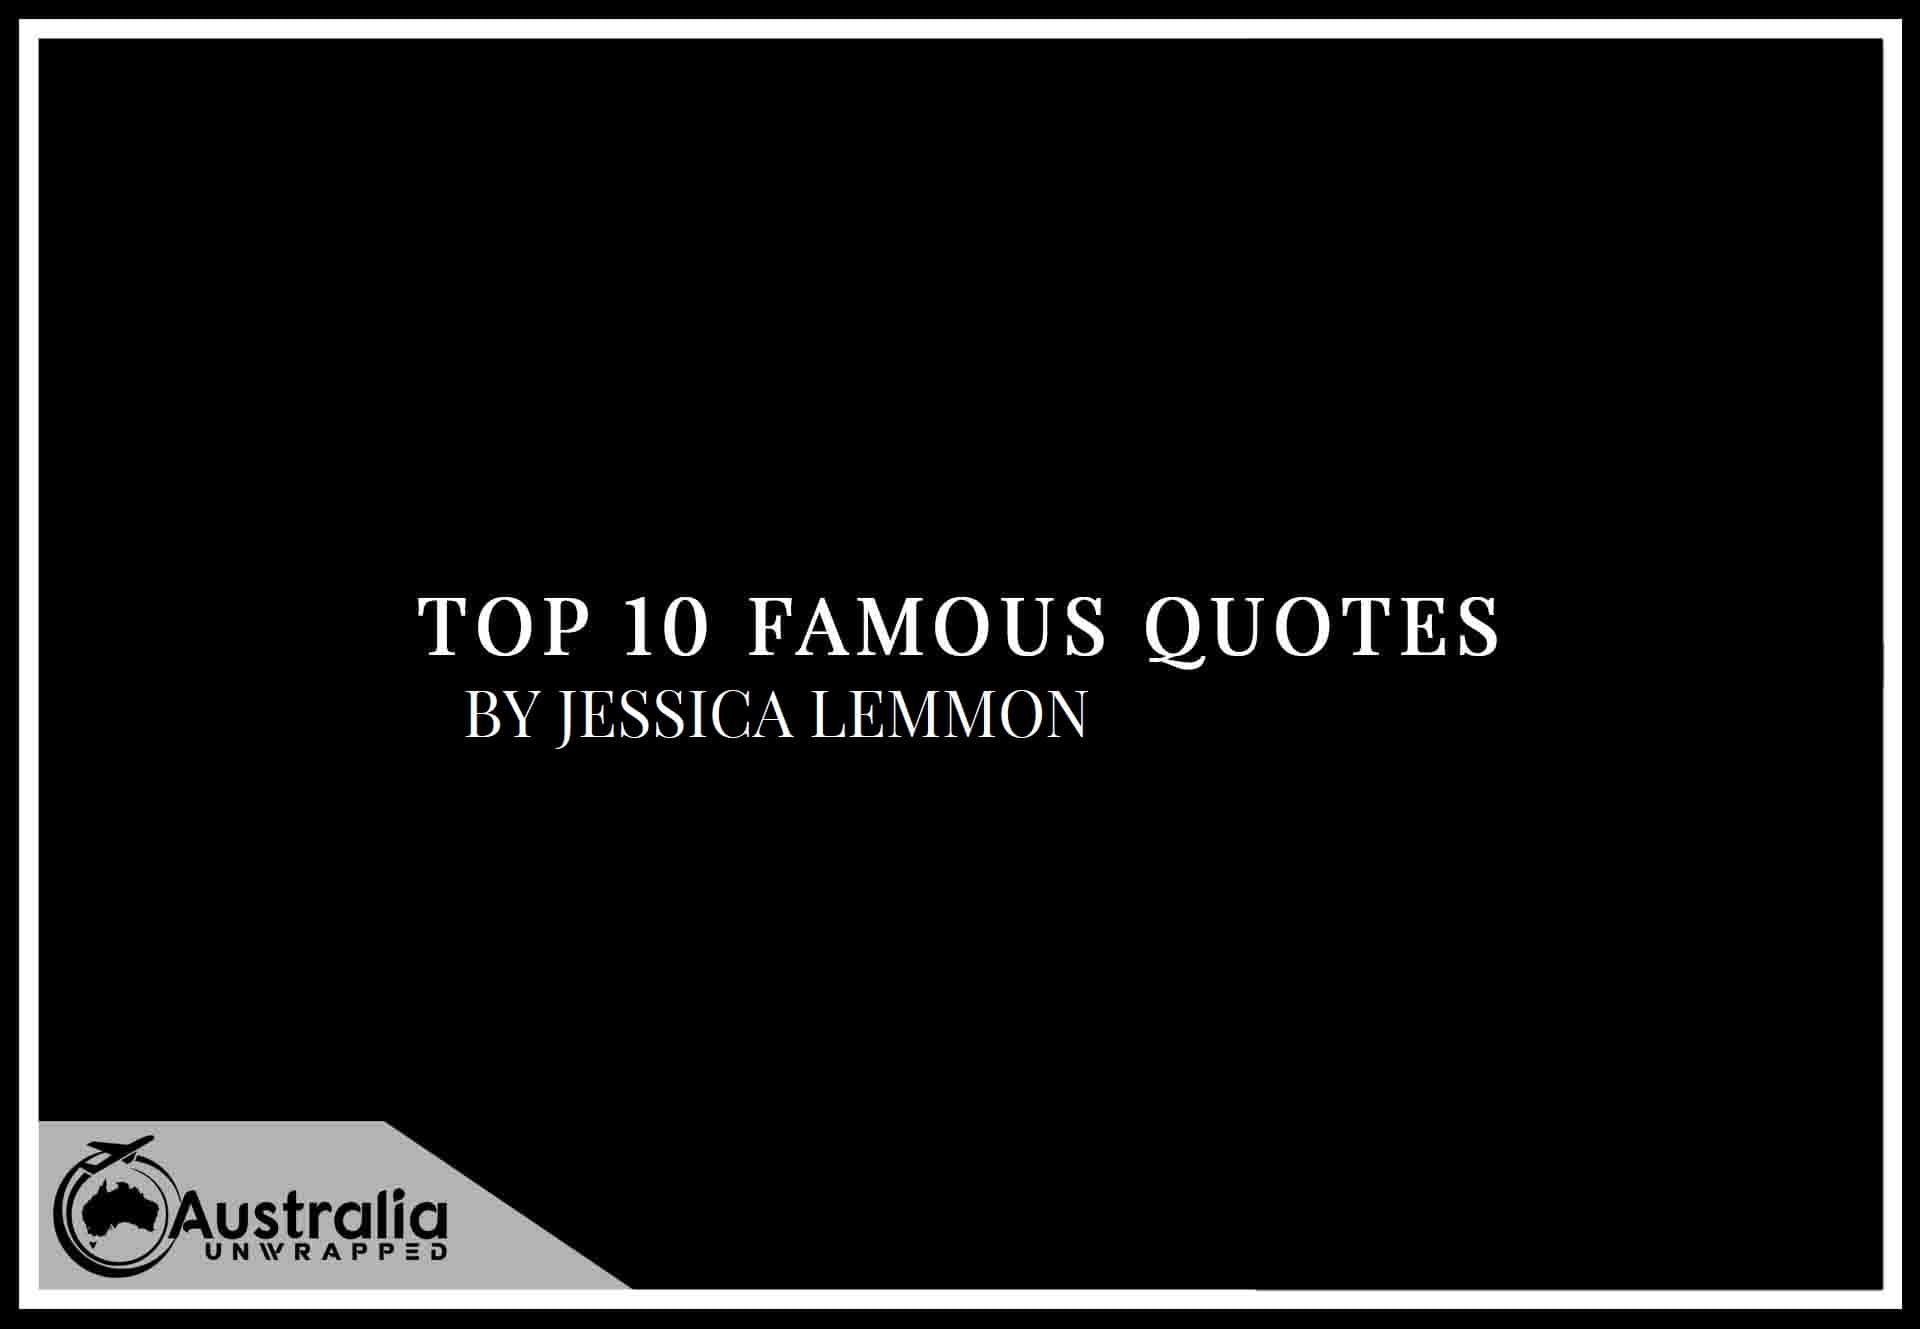 Top 10 Famous Quotes by Author Jessica Lemmon